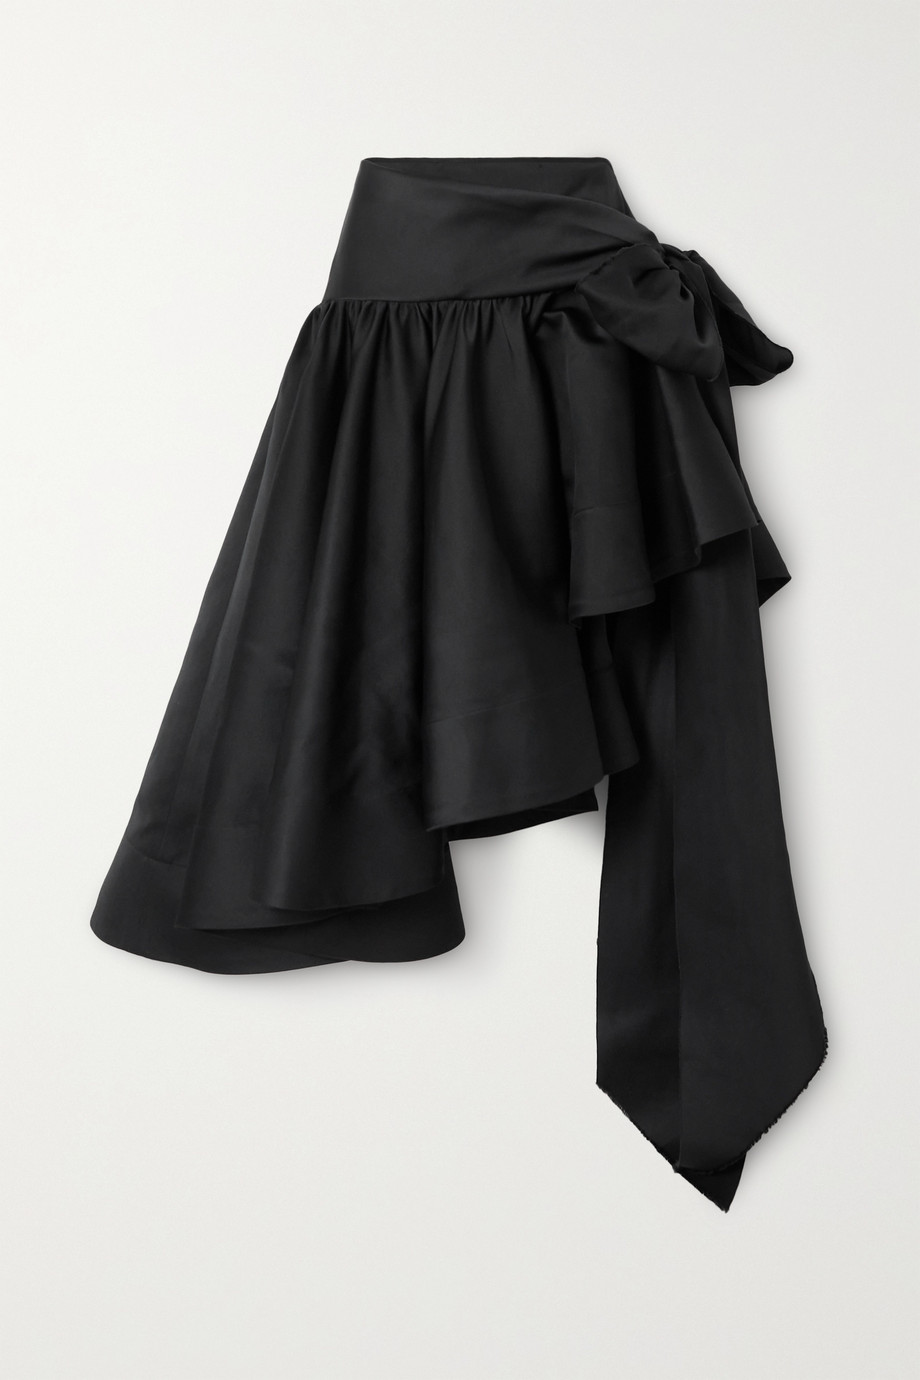 AZ FACTORY Switchwear asymmetric recycled duchesse-satin skirt